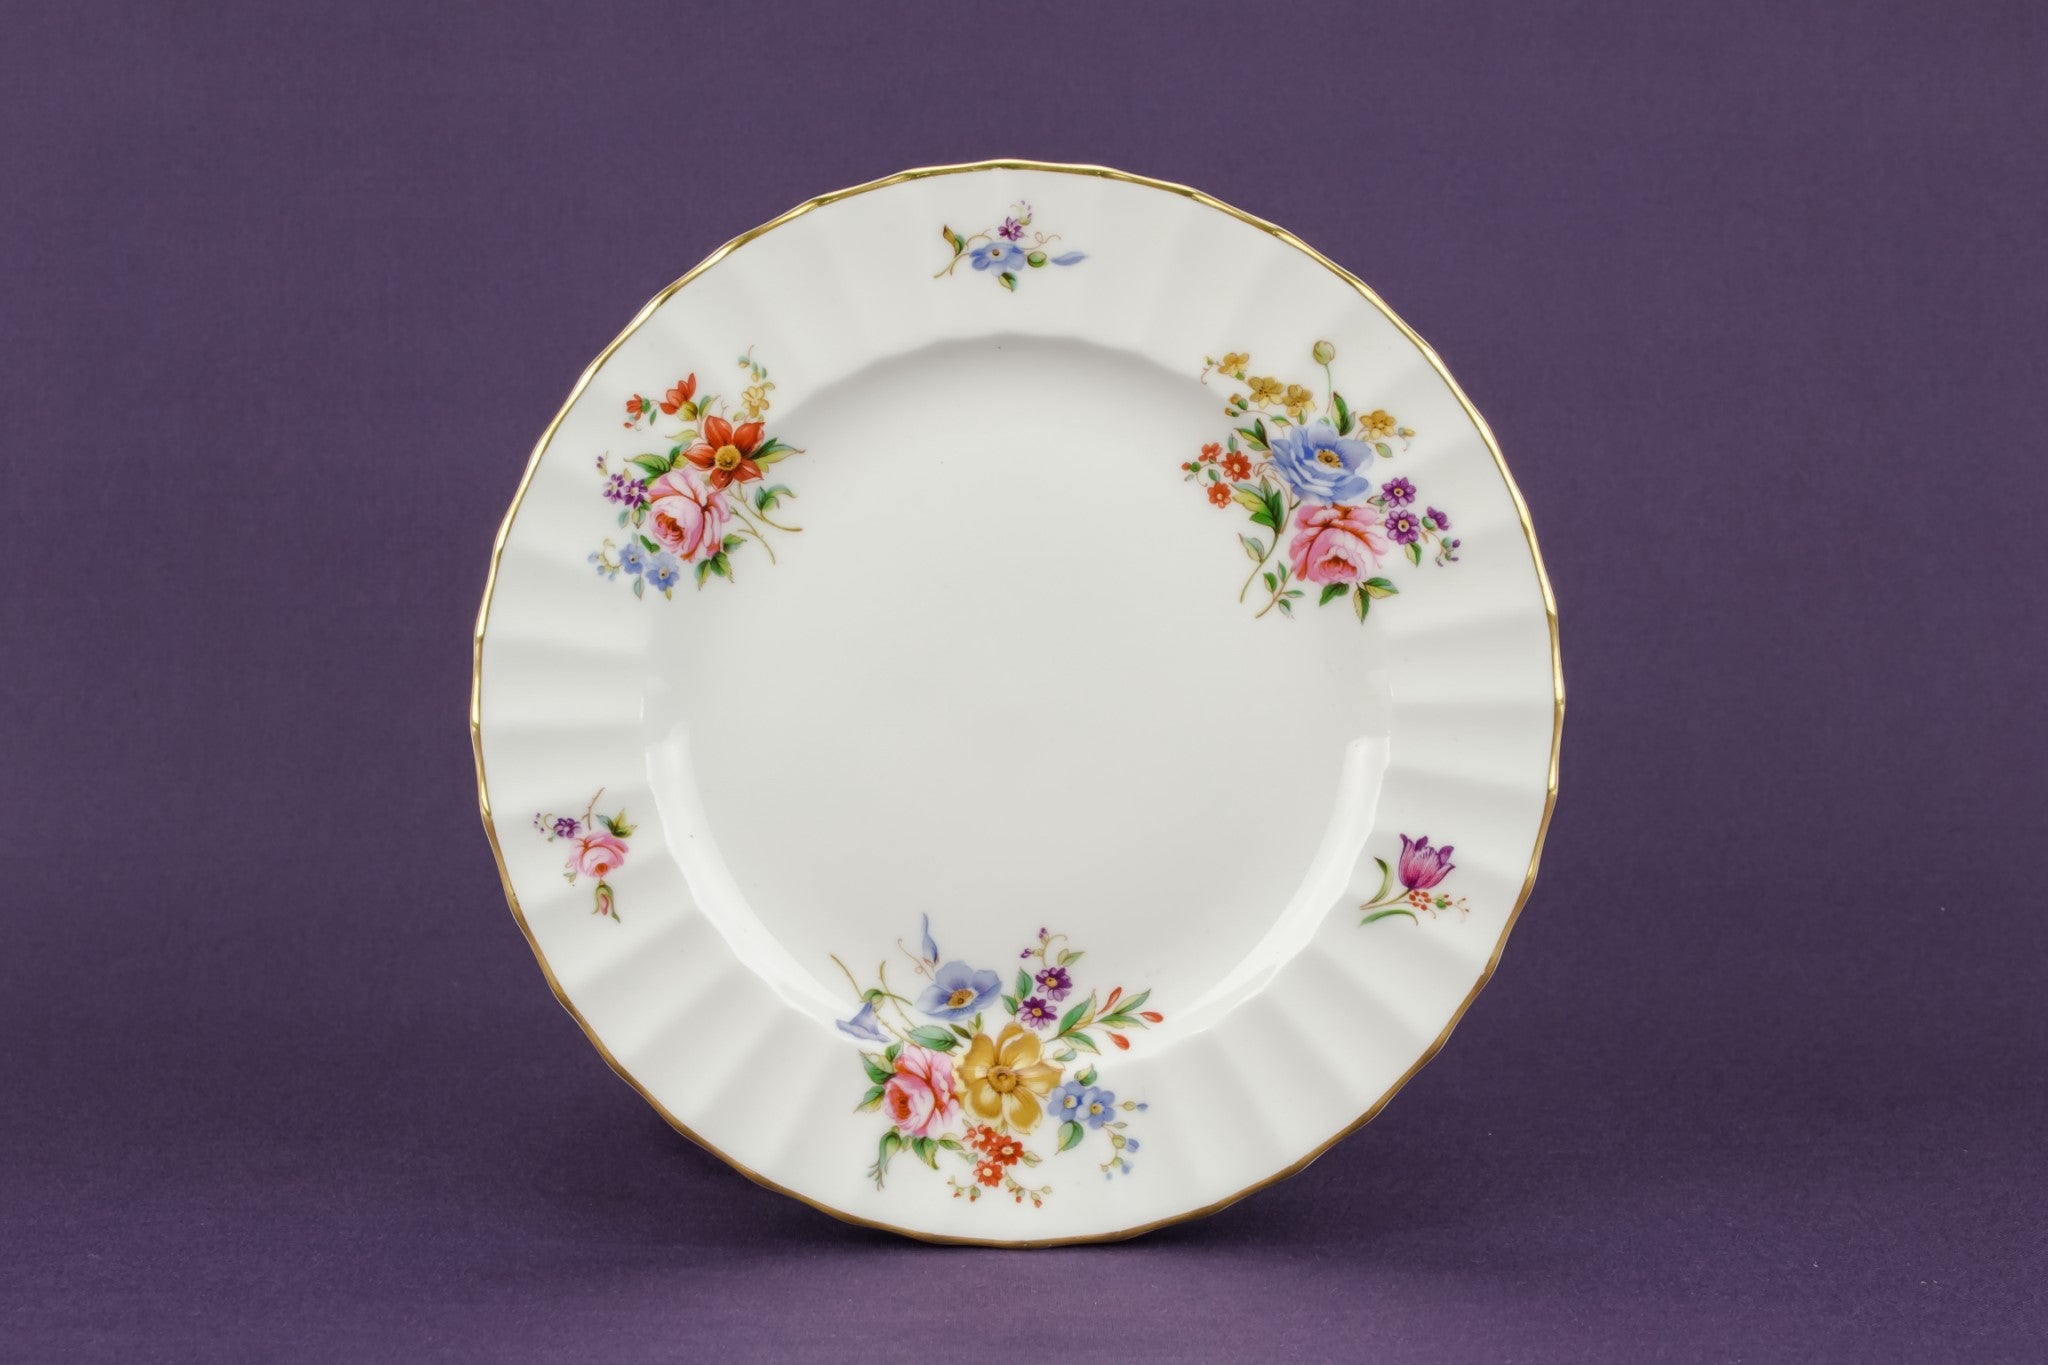 6 Retro bone china plates